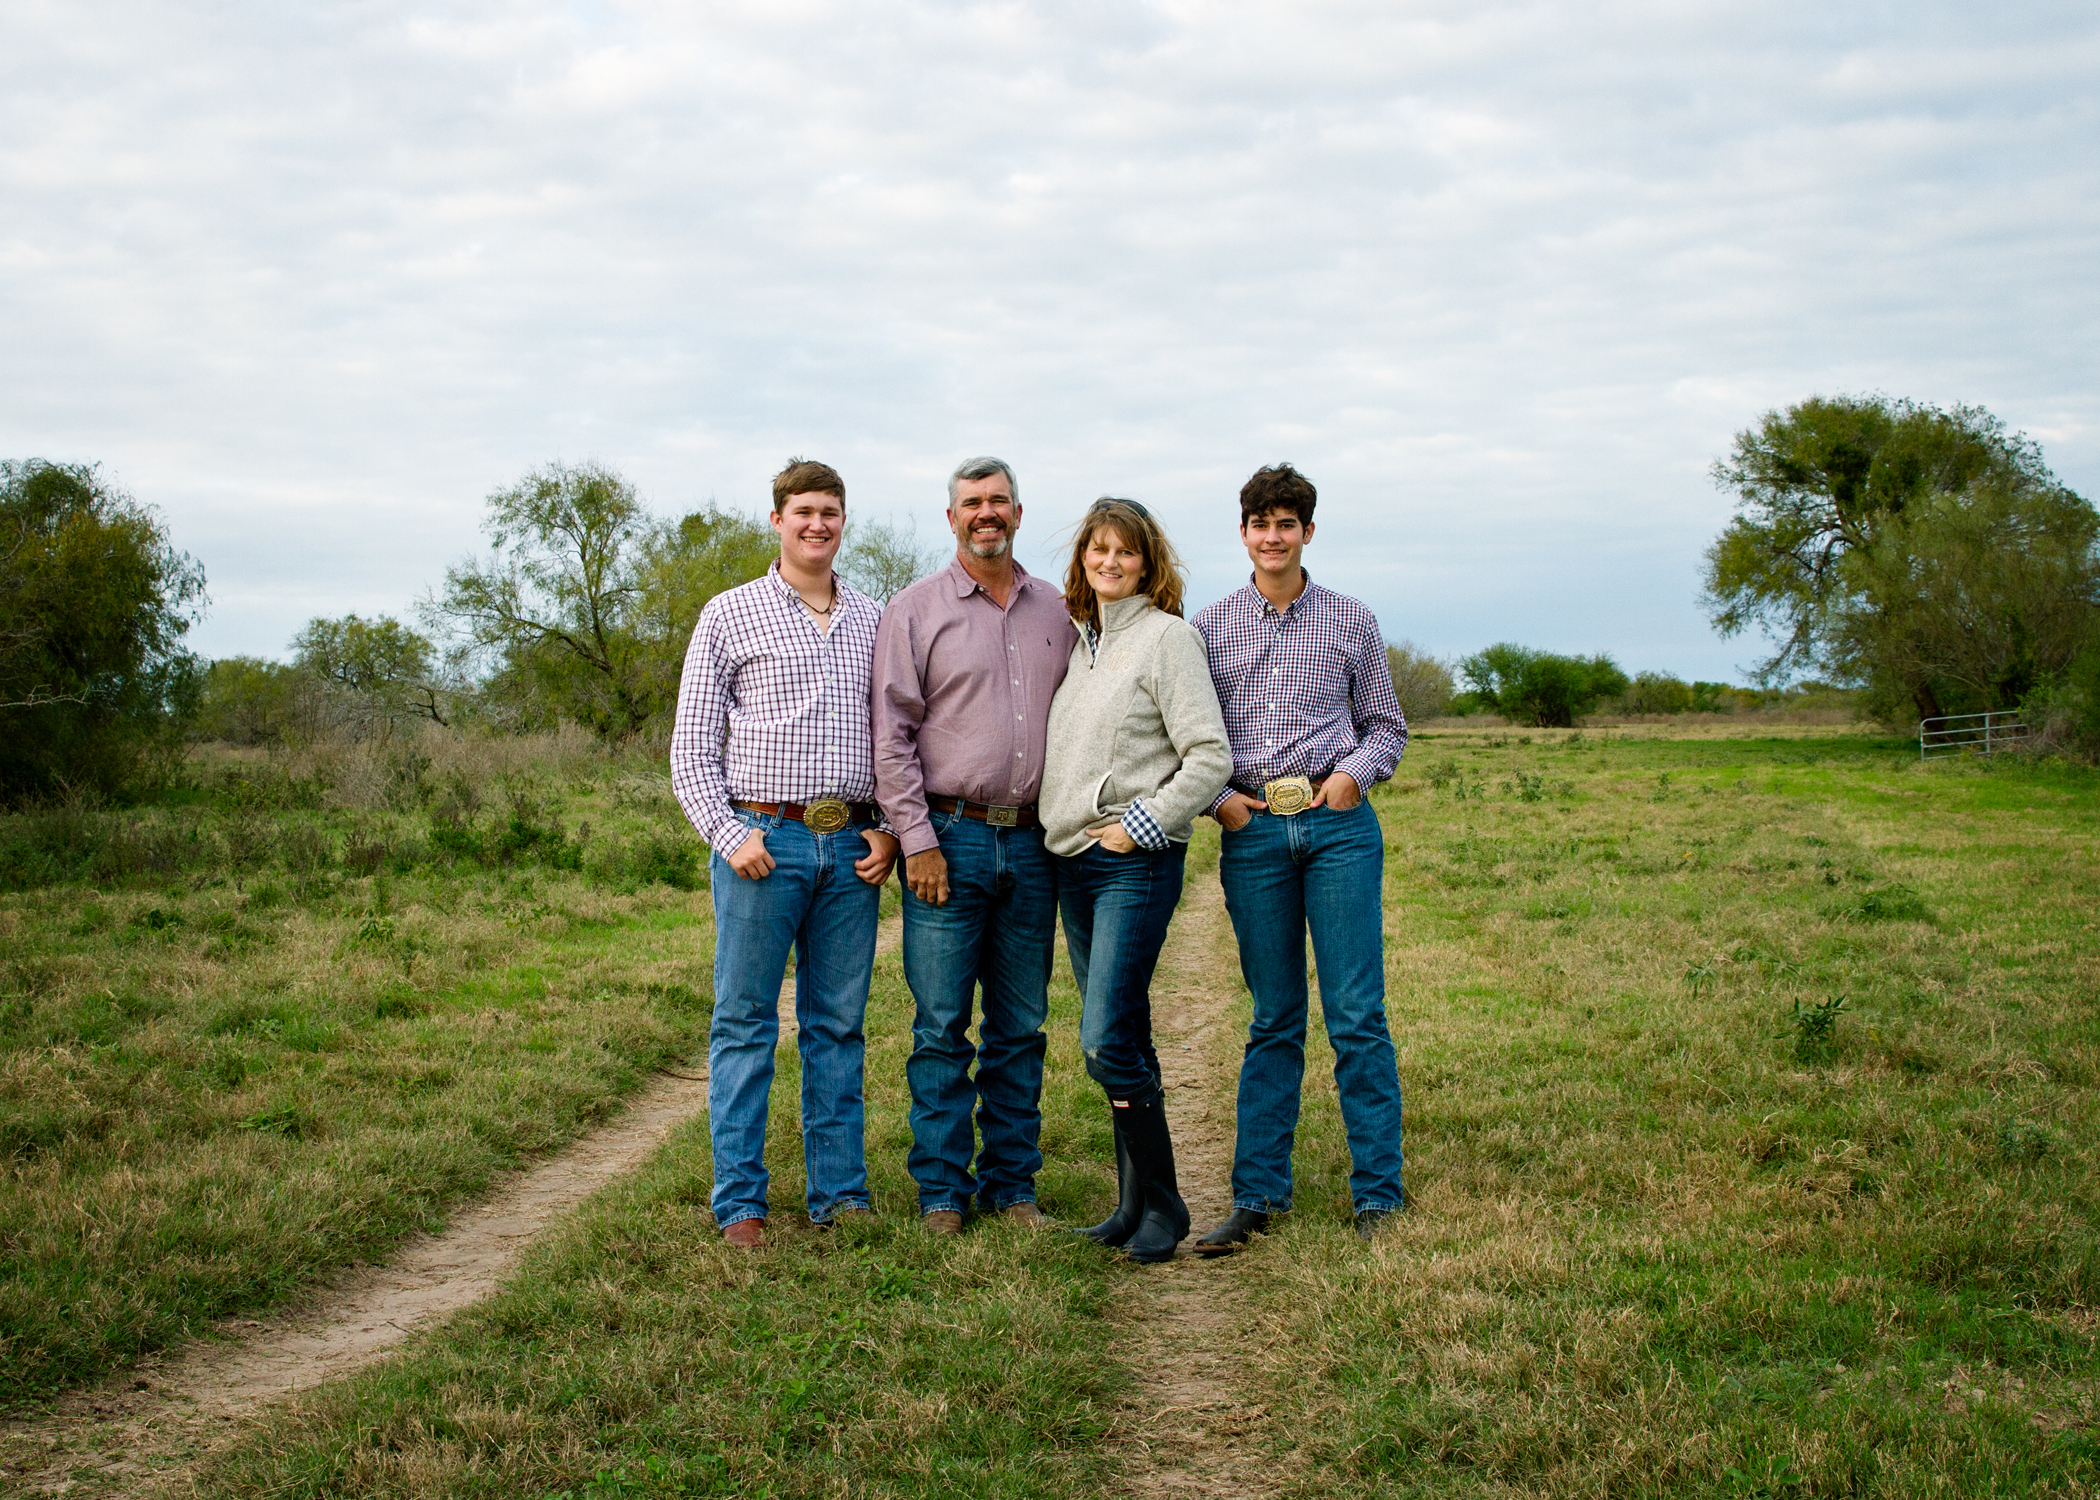 We are Jon, Kelly, Payne, & Jackson Whatley.  - Jon is the 4th generation in his family to farm. Kelly is not a country girl, but has adapted to farming and South Texas life over the past 25 years. Payne attends Texas A&M, and Jack is a senior in high school. Despite retiring several years ago, Jon's dad, Bob, still comes to work each day and can be found on the farm or out with the cattle.